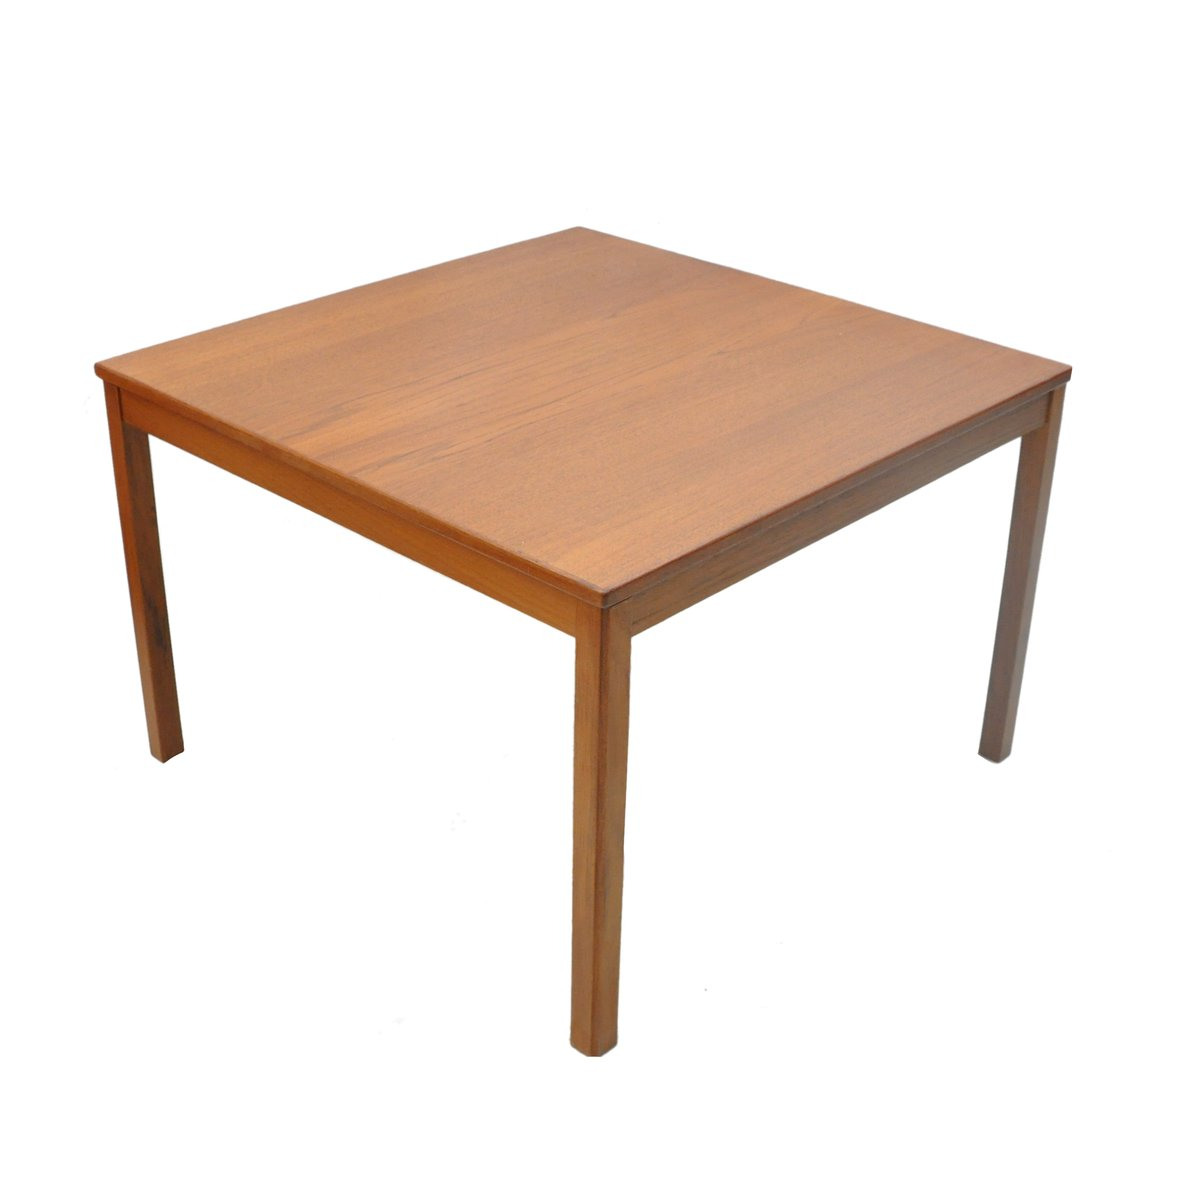 212 teak coffee table 1970s for sale at pamono